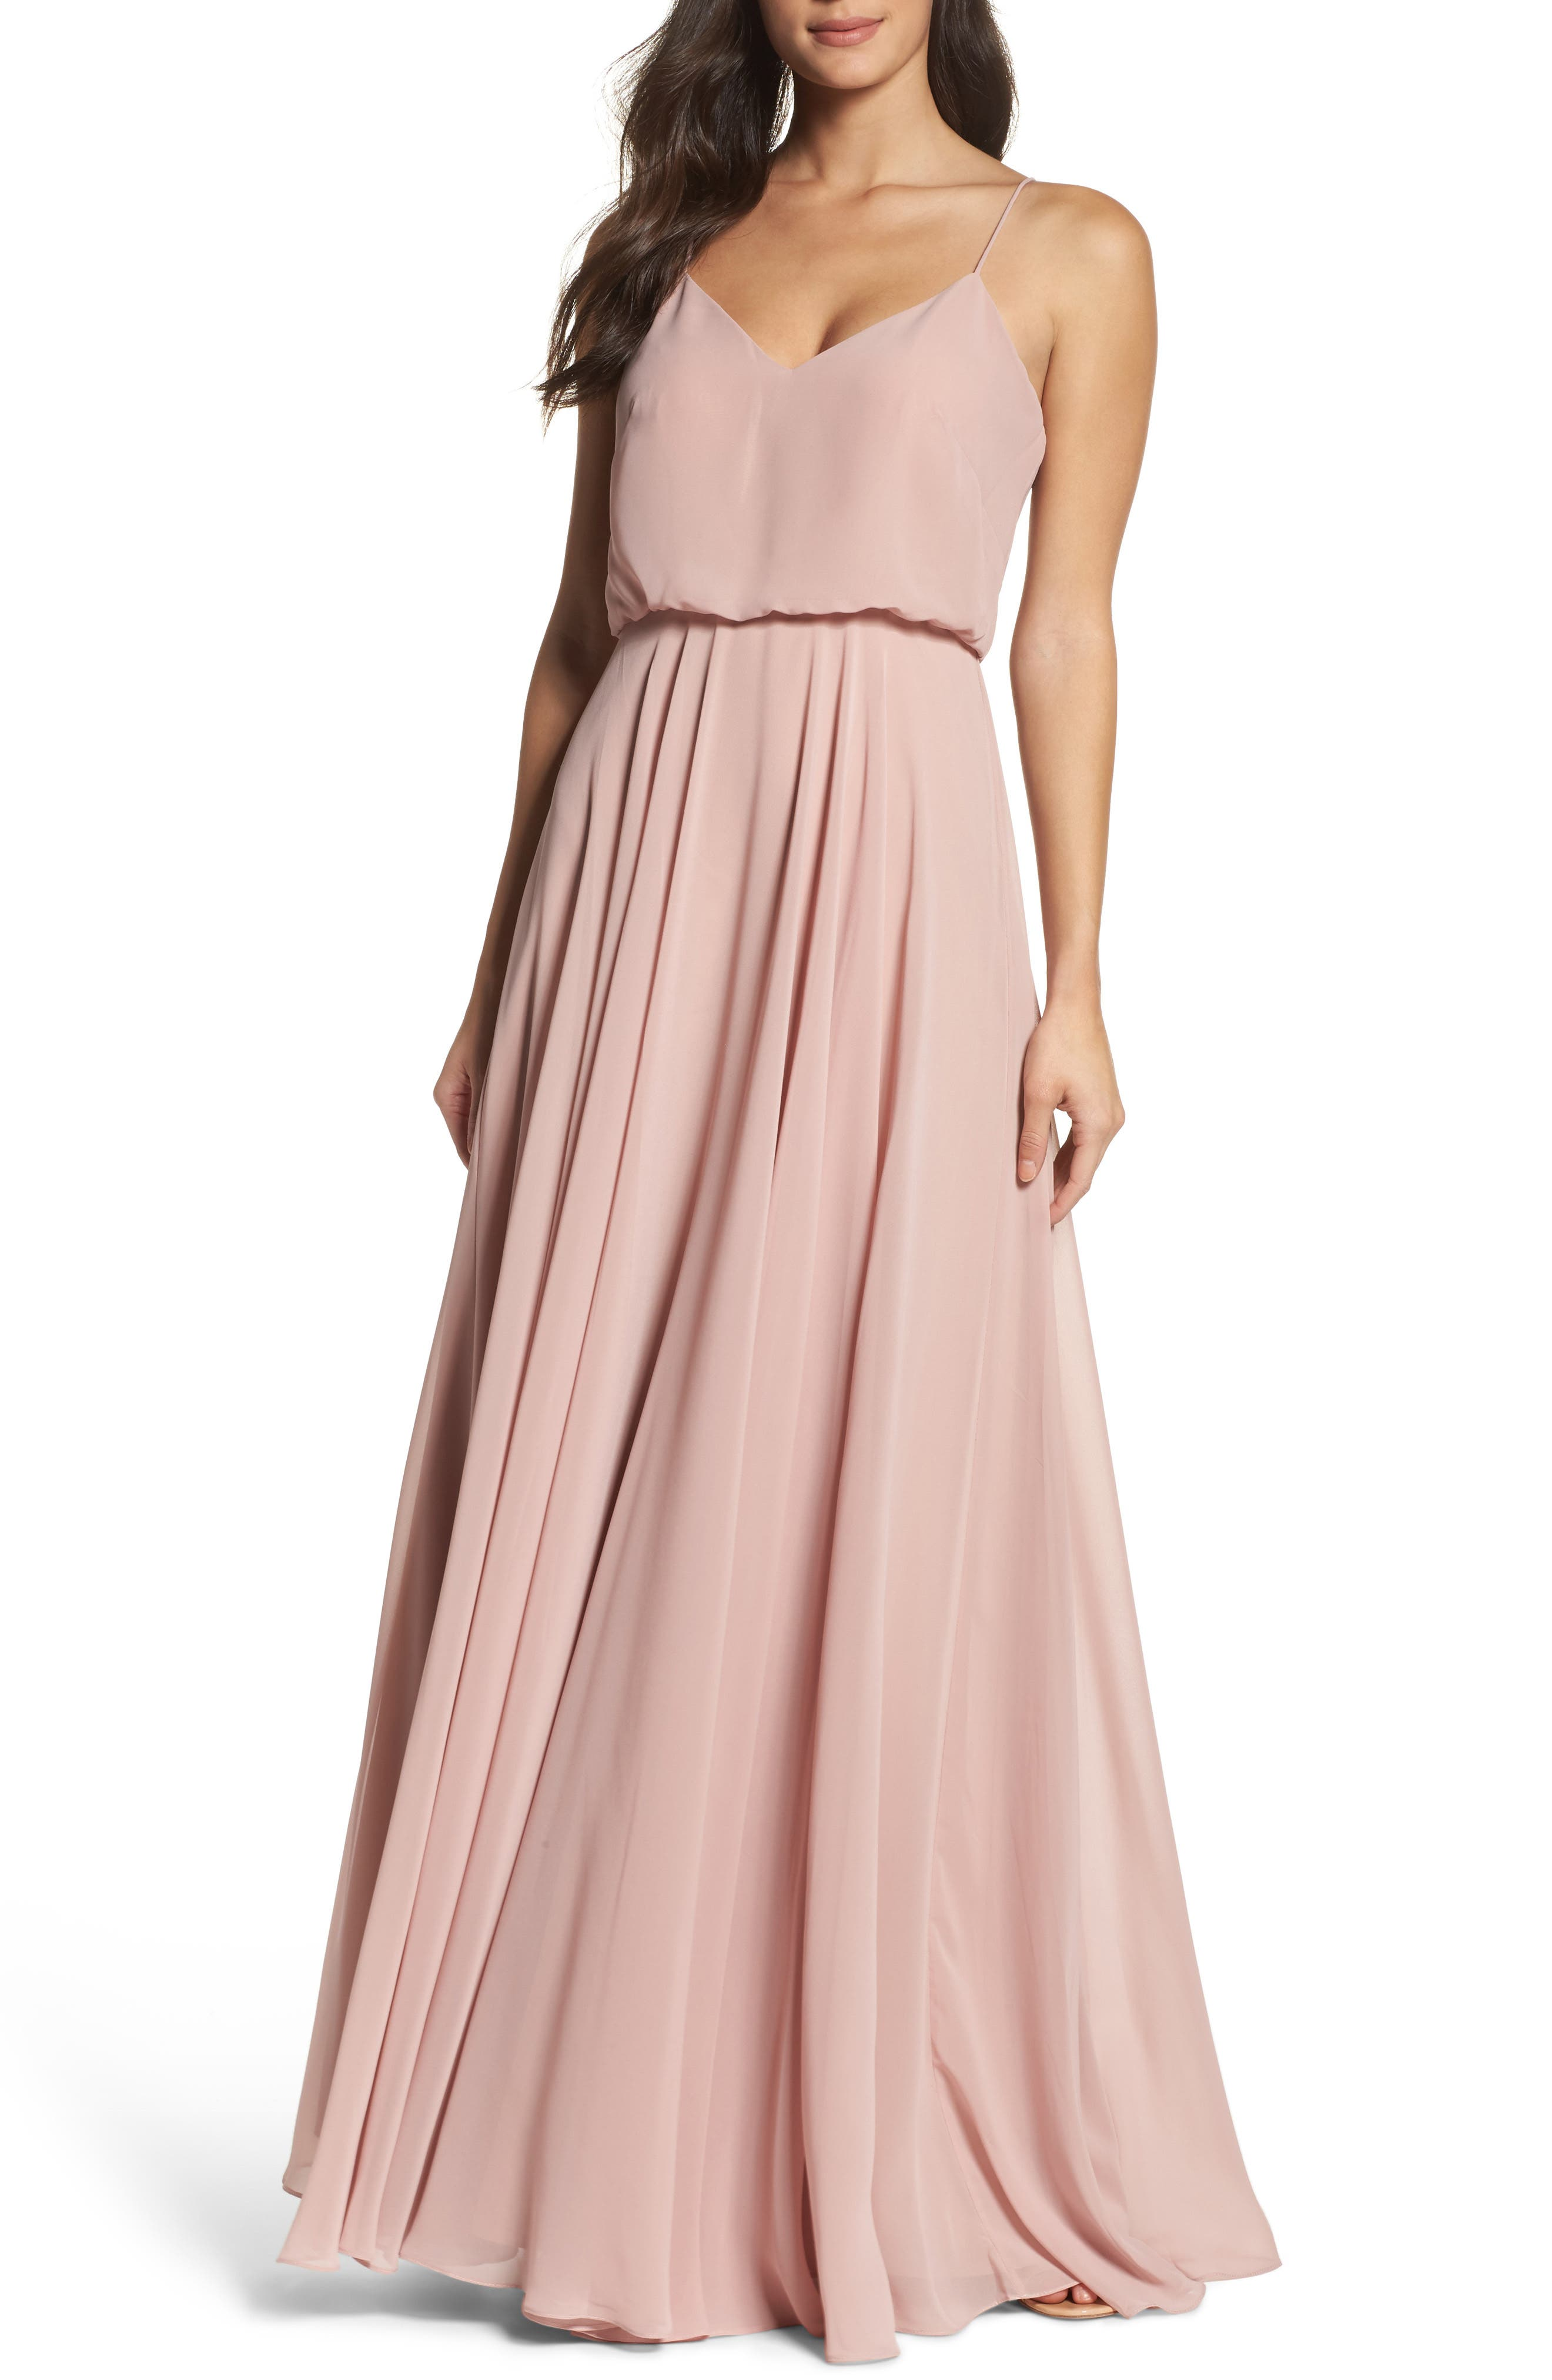 JENNY YOO Inesse Chiffon V-Neck Spaghetti Strap Gown, Main, color, WHIPPED APRICOT